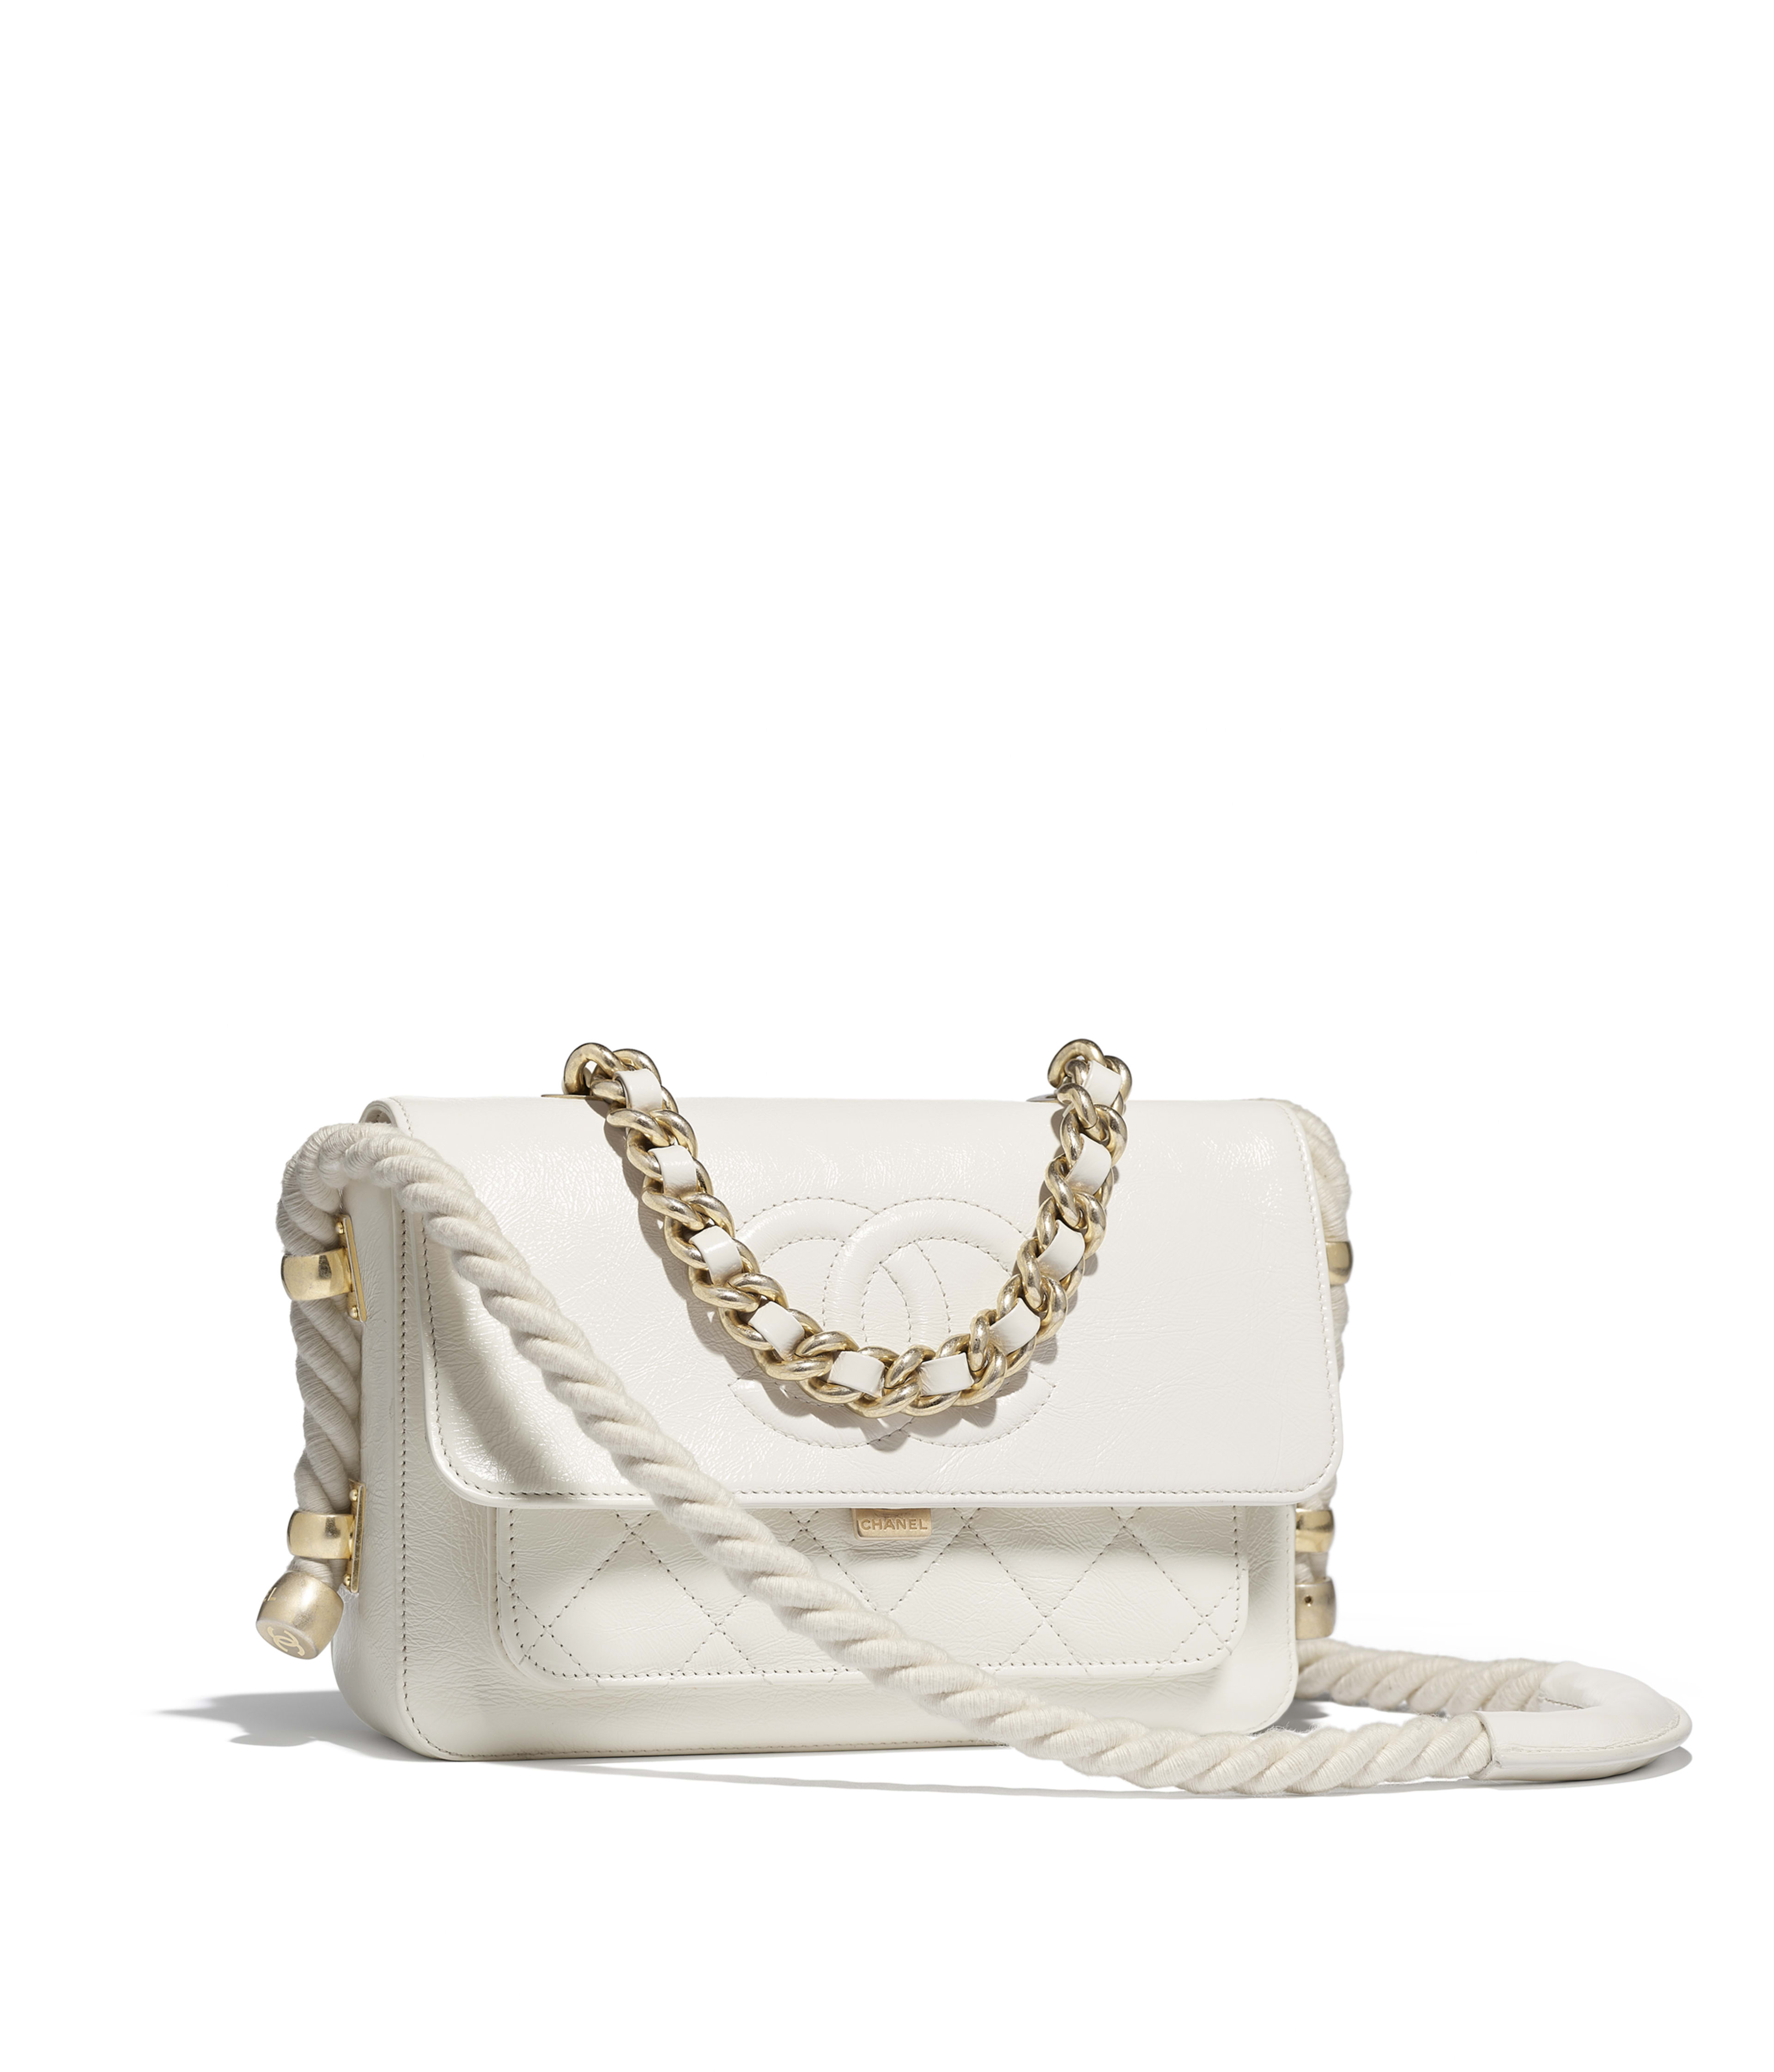 Flap Bag Crumpled Calfskin Cotton Gold Tone Metal White Ref As0074y8410010601